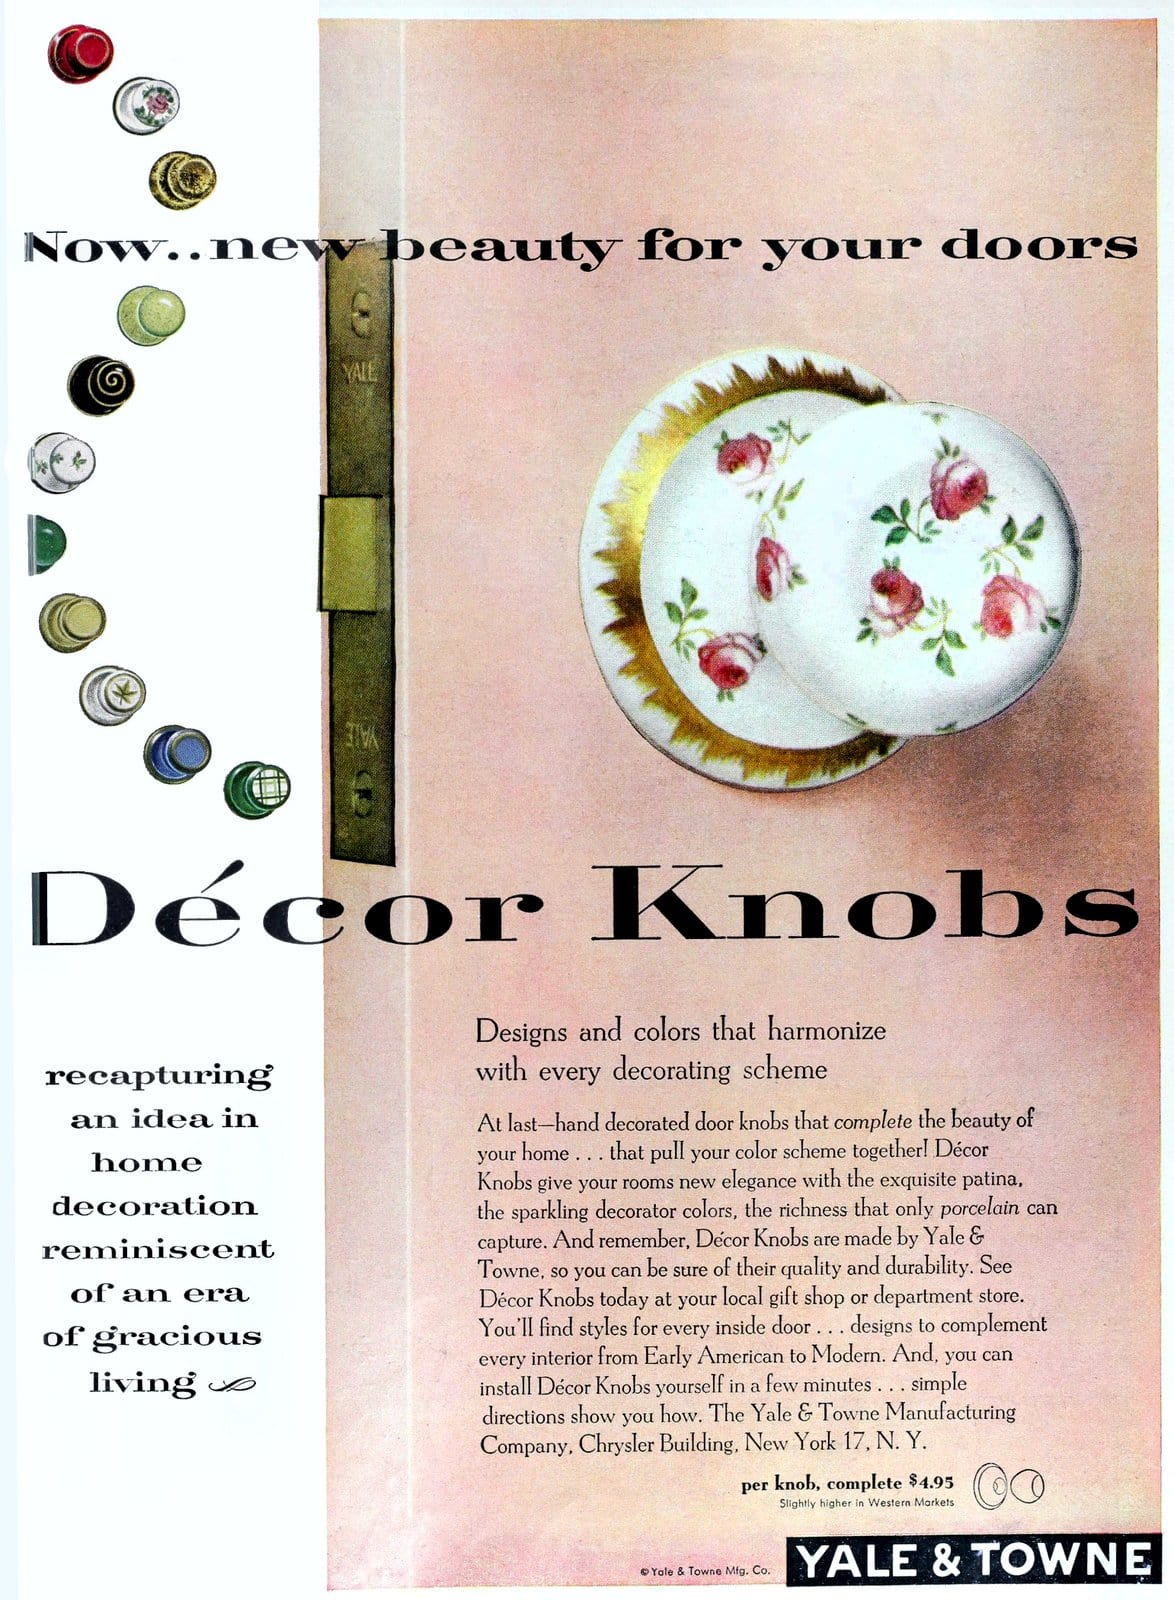 Vintage painted porcelain Yale and Towne Decor Knobs door hardware (1953)